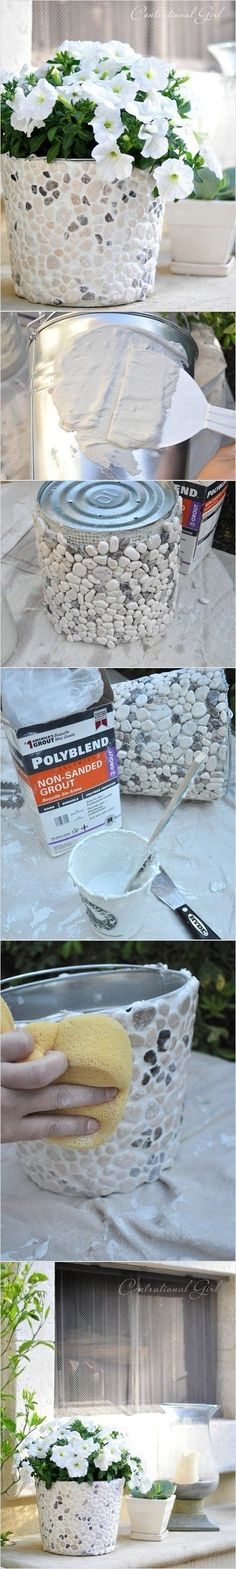 Make your own stone flower pot